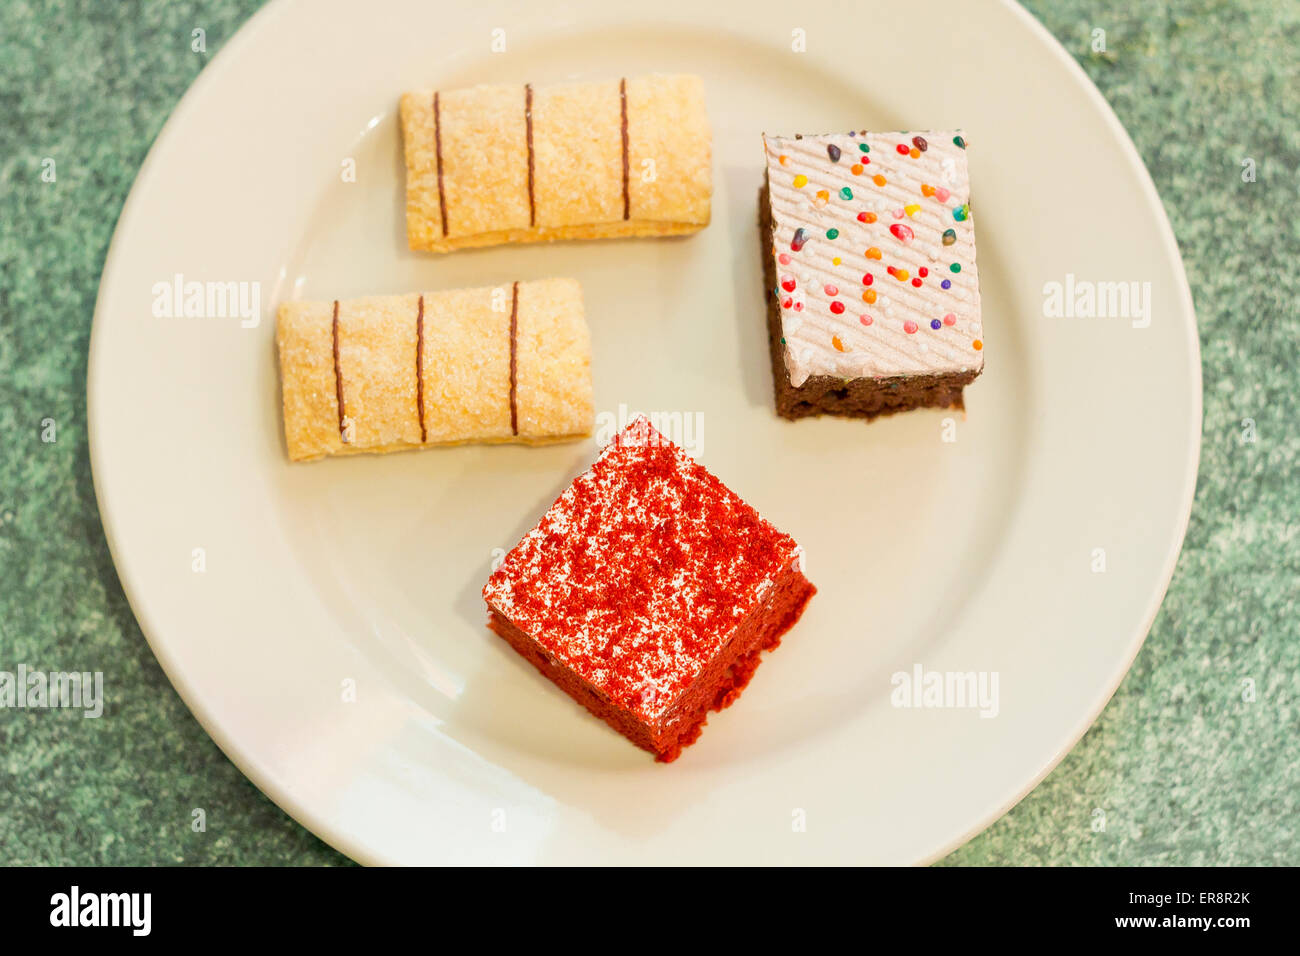 Assortment of sweet and colorful dessert cakes on a plate - Stock Image